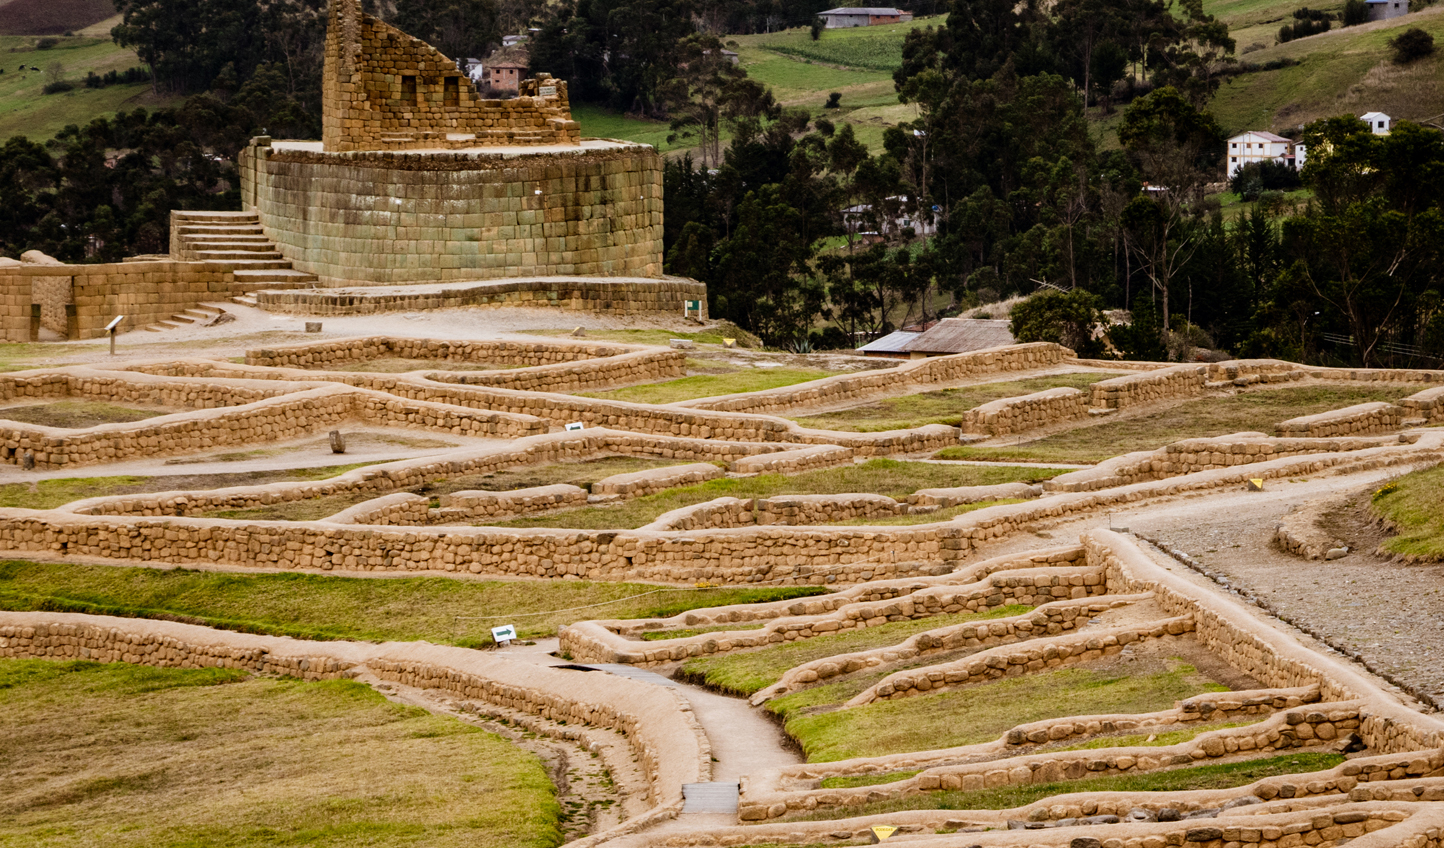 Intricate Inca ruins, just outside of Quito